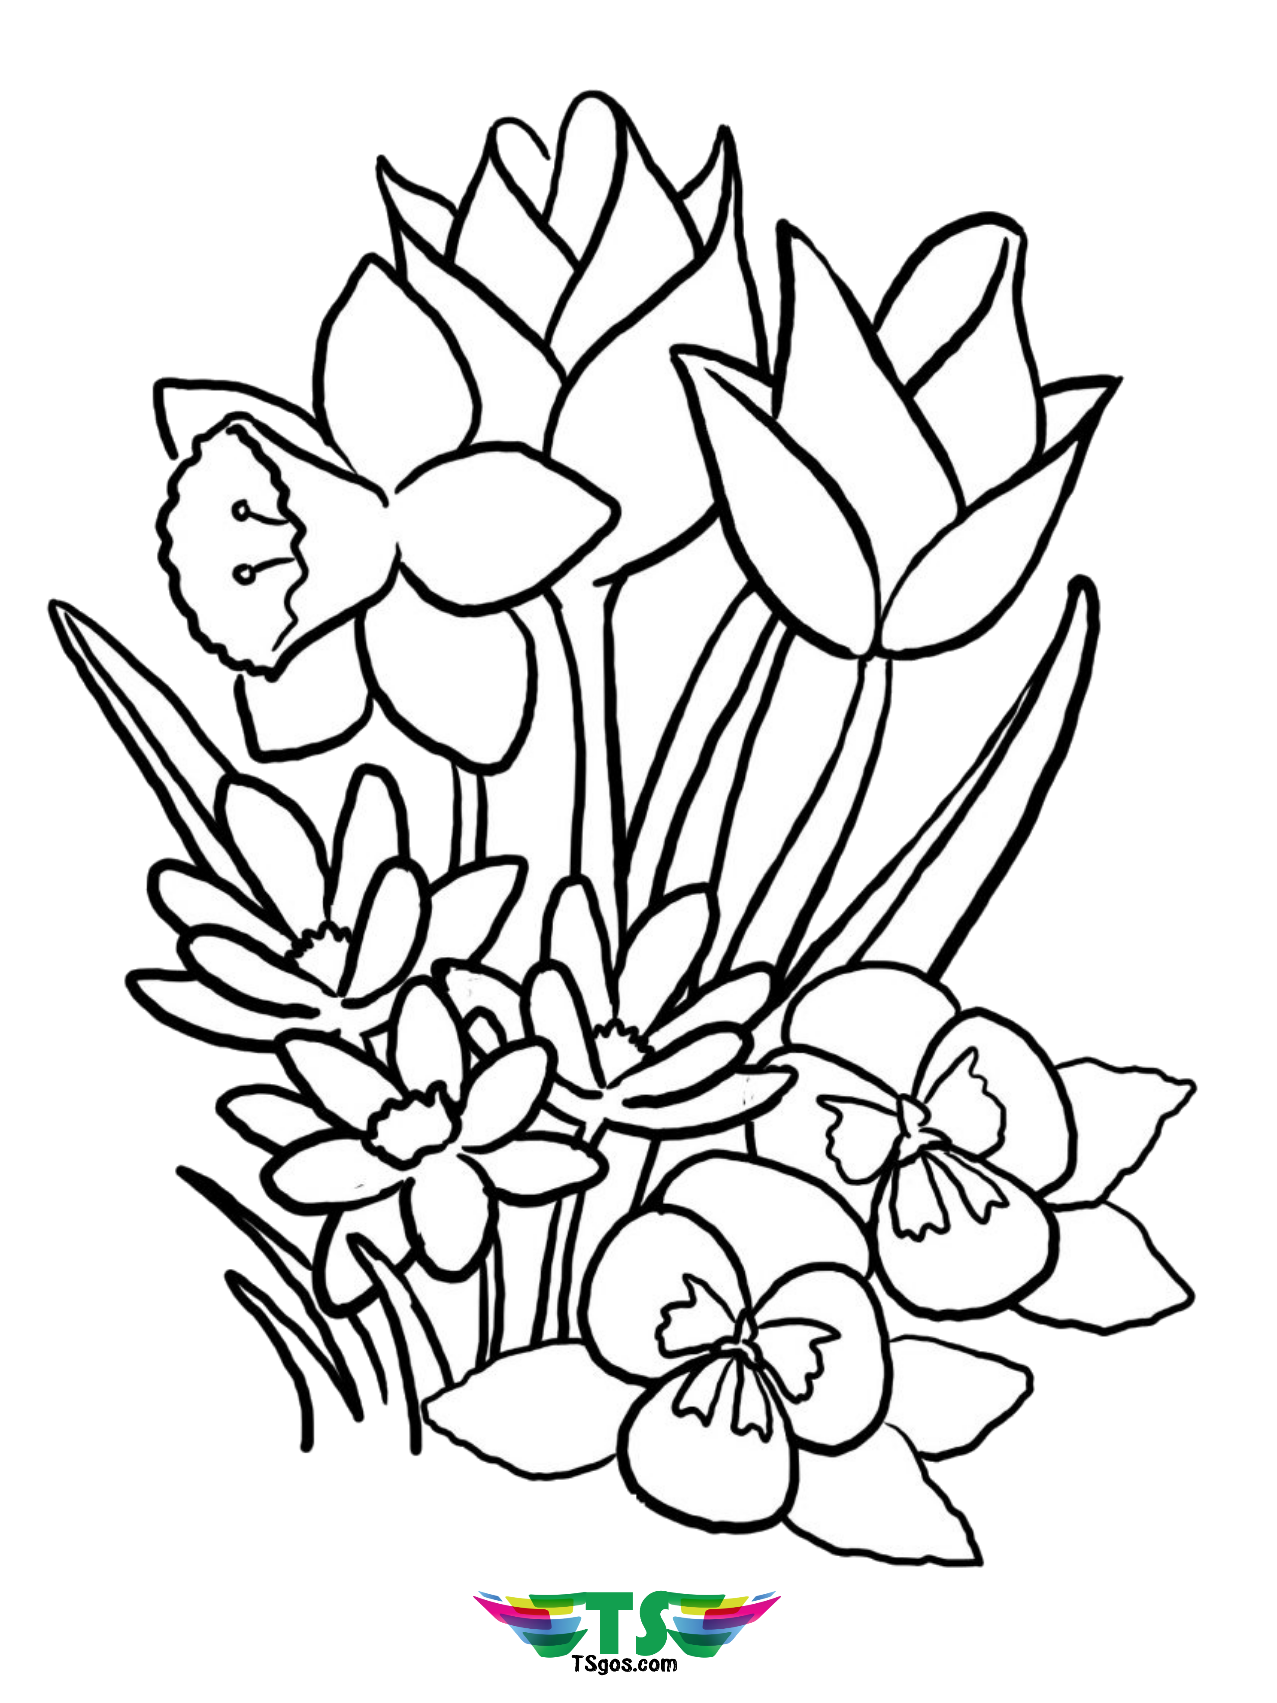 images of flowers to color spring flowers coloring pages printable color images flowers to of